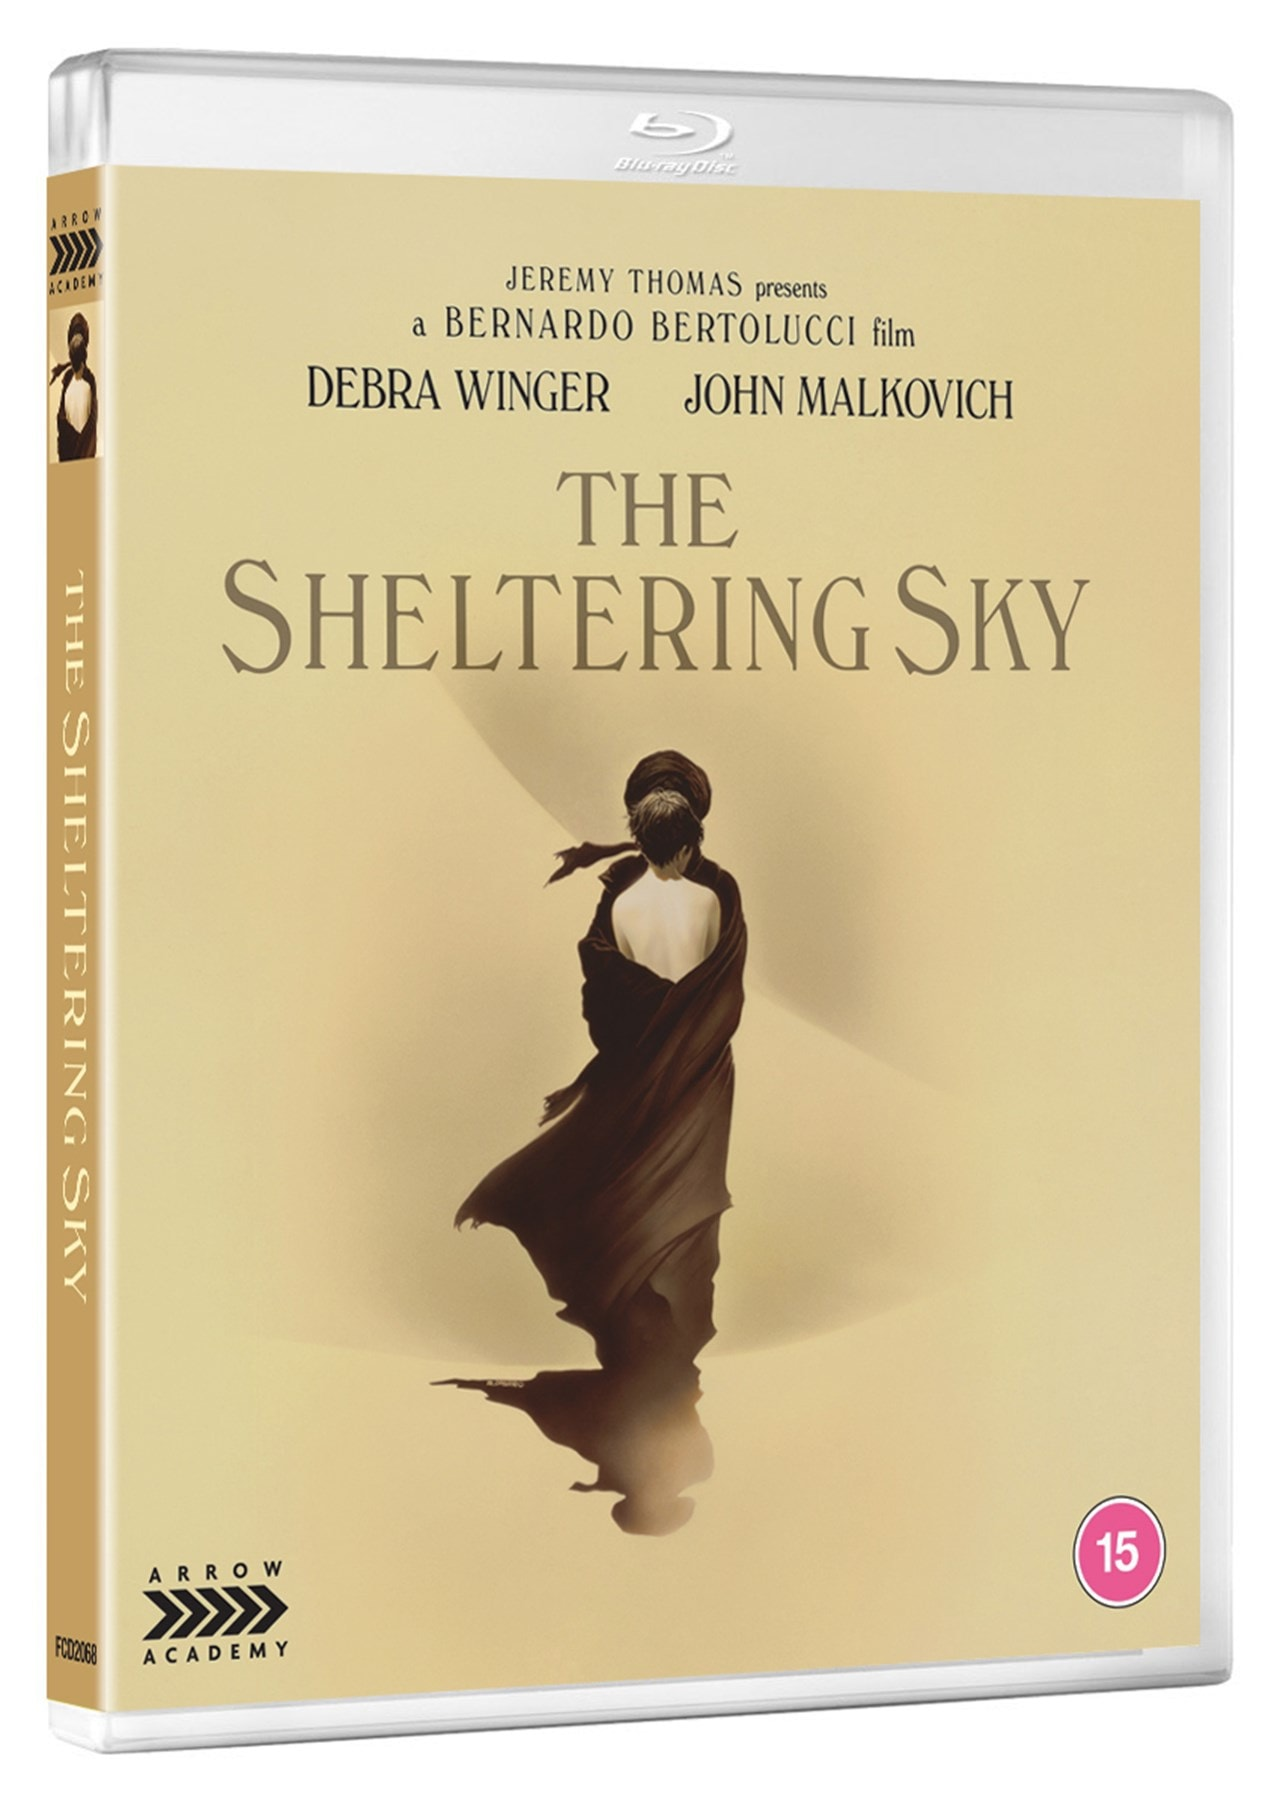 The Sheltering Sky - 4